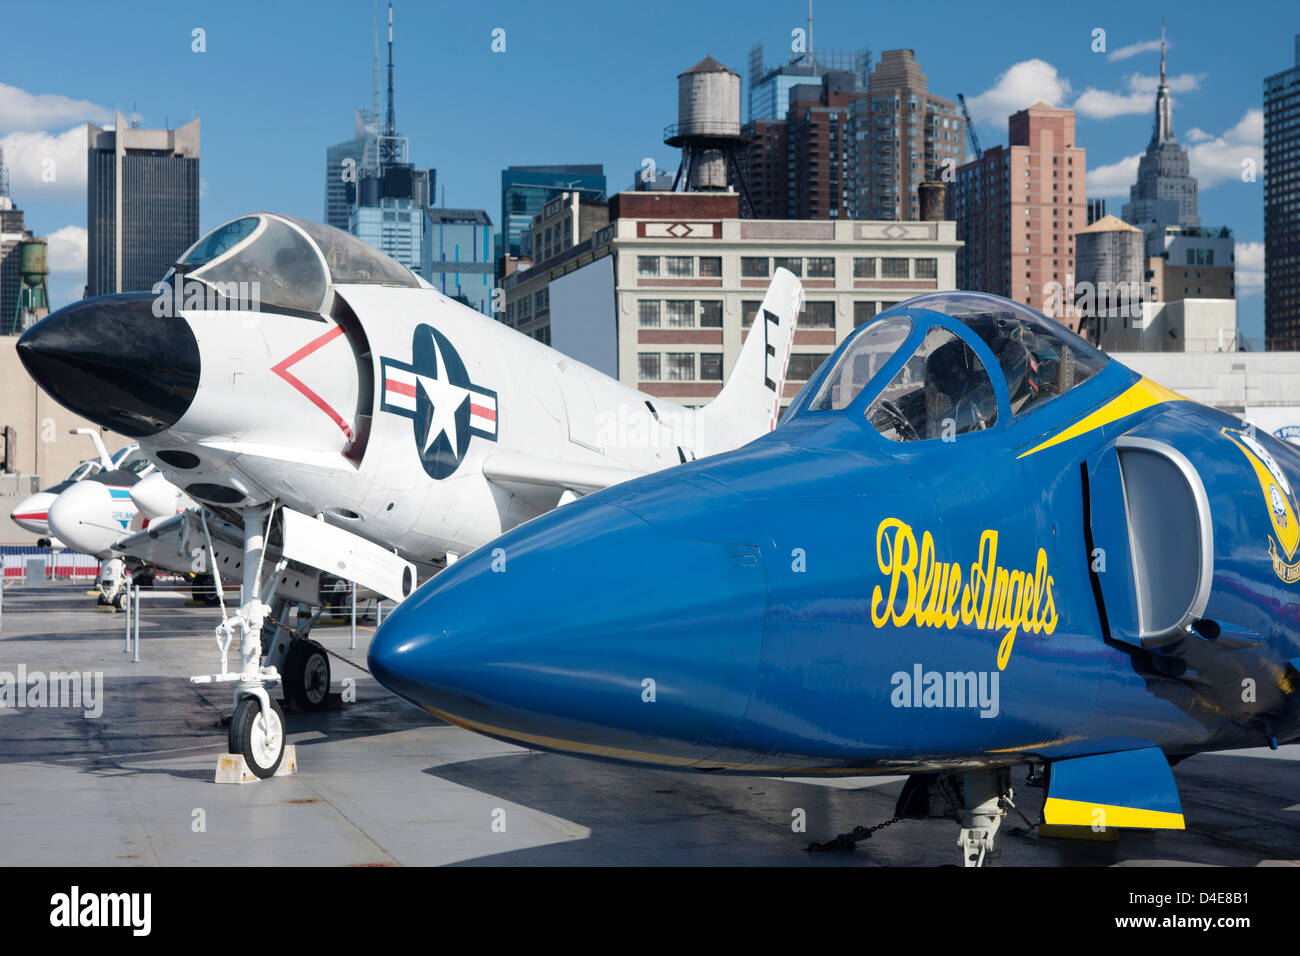 FLIGHT DECK OF INTREPID SEA AIR AND SPACE MUSEUM MANHATTAN NEW YORK CITY USA Stock Photo